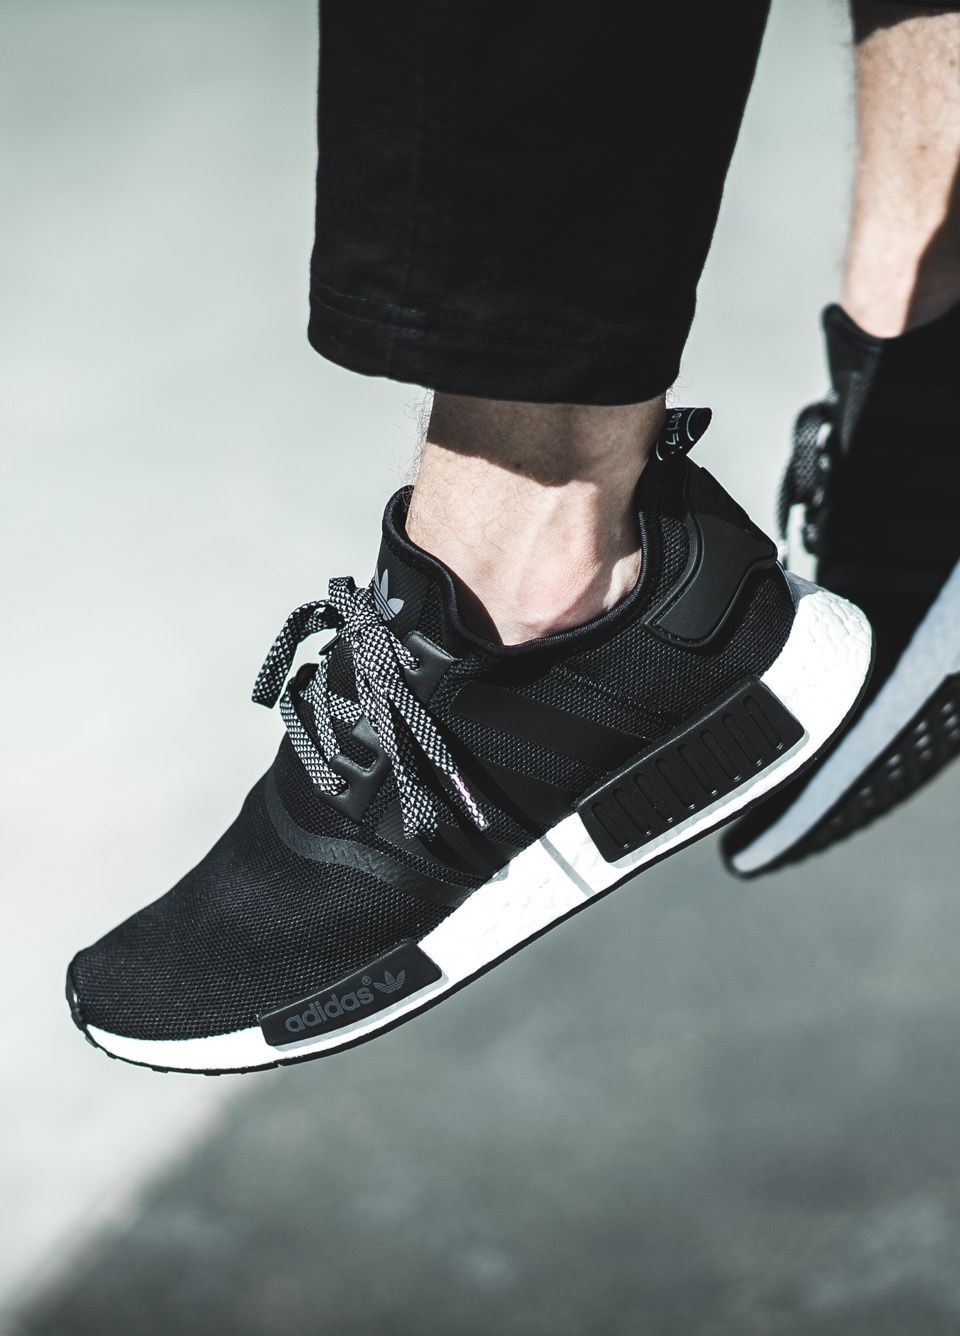 lowest price 2bddc 61894 adidas NMD R1 Reflective Pack black  sneakernews  Sneakers  StreetStyle   Kicks